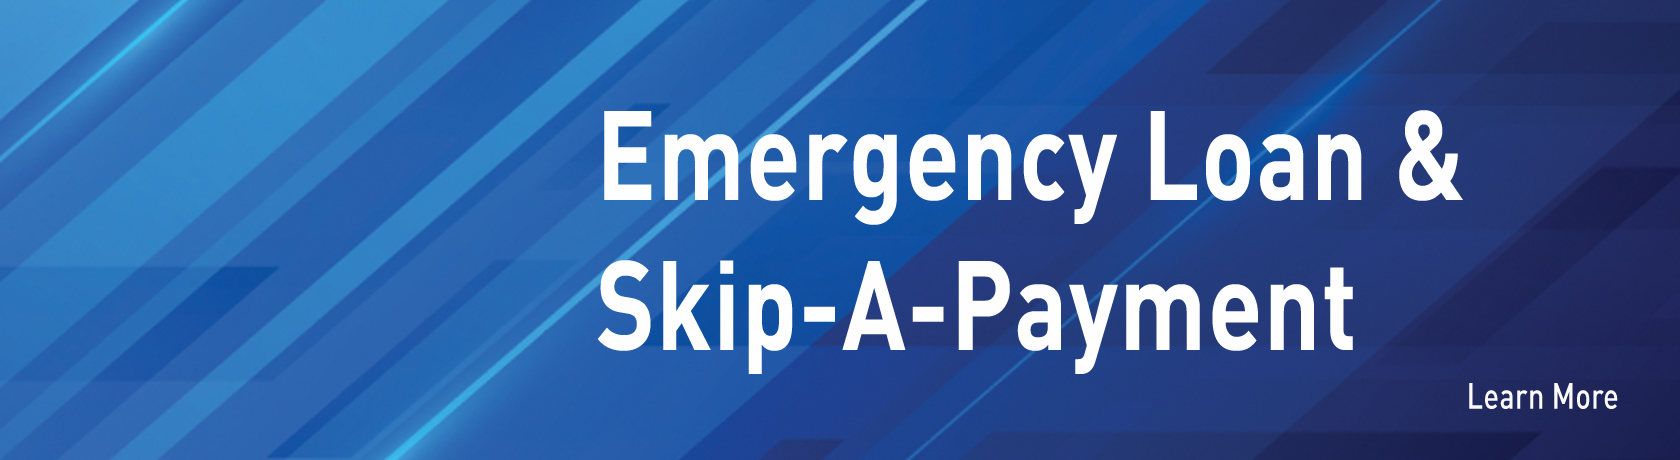 Emergency Loan & Skip-A-Payment